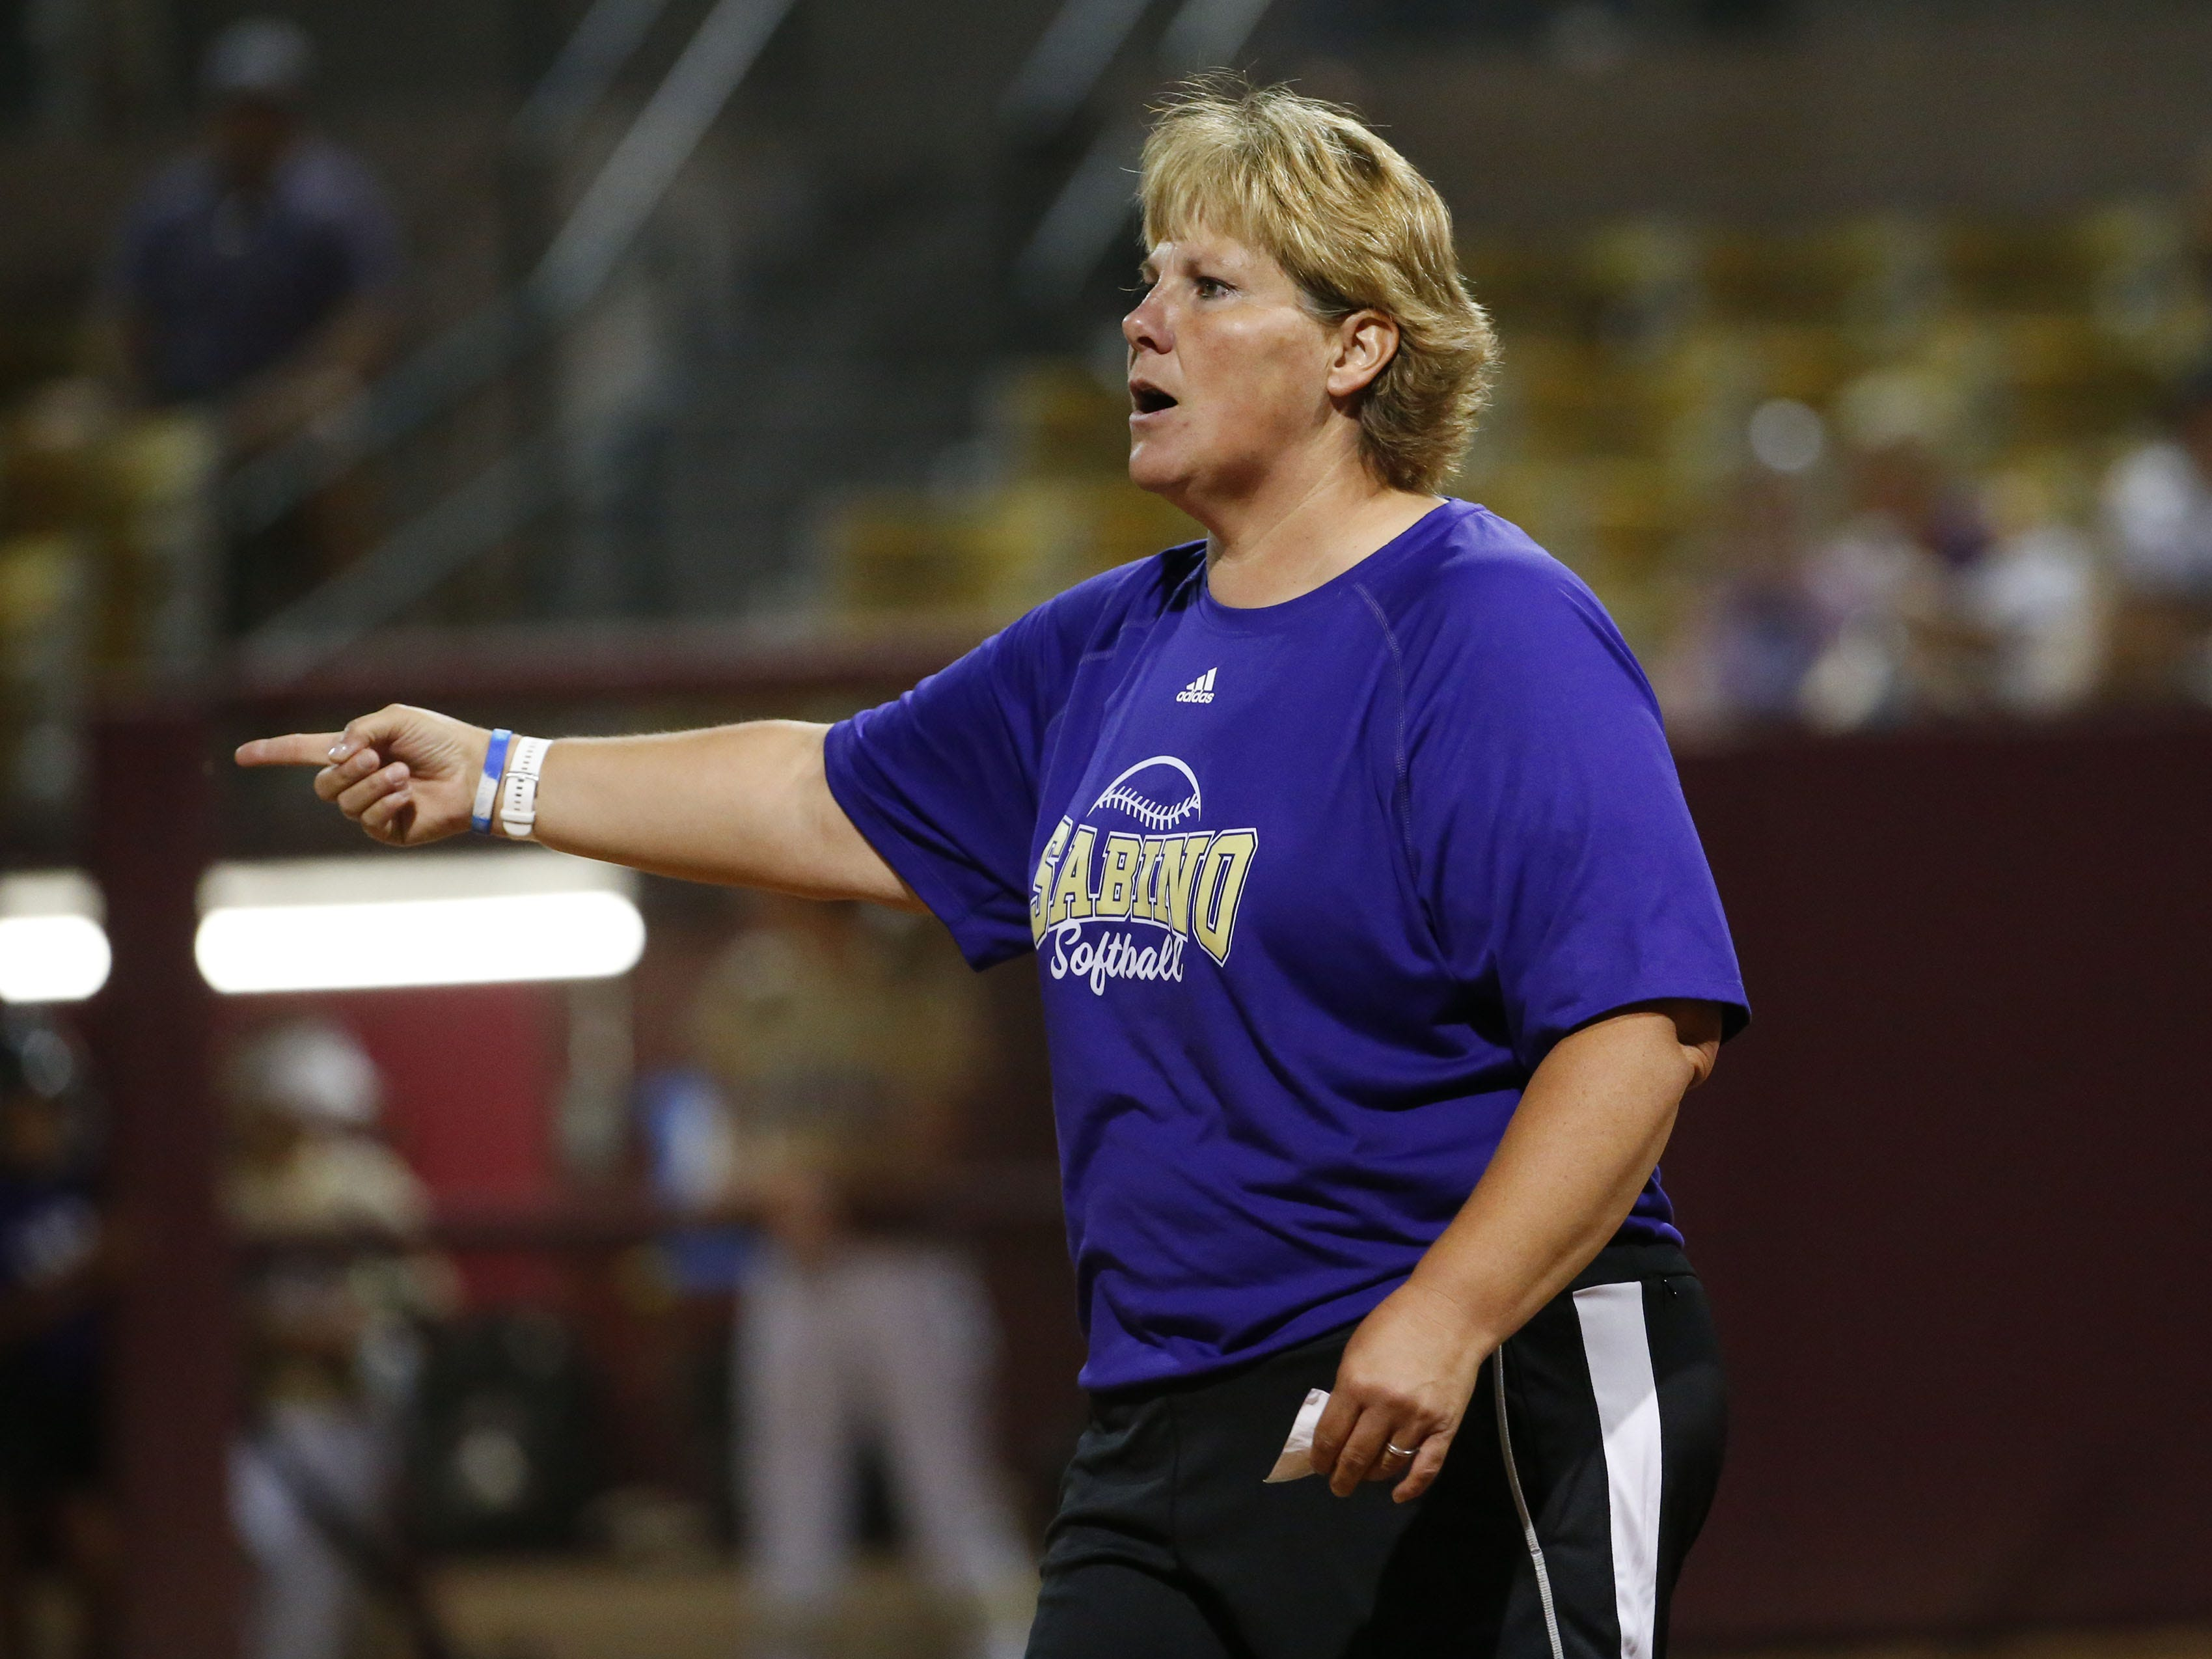 Sabino head coach Chris Stainer directs her team against Snowflake during the 3A softball state championship game in Tempe May 6, 2019.